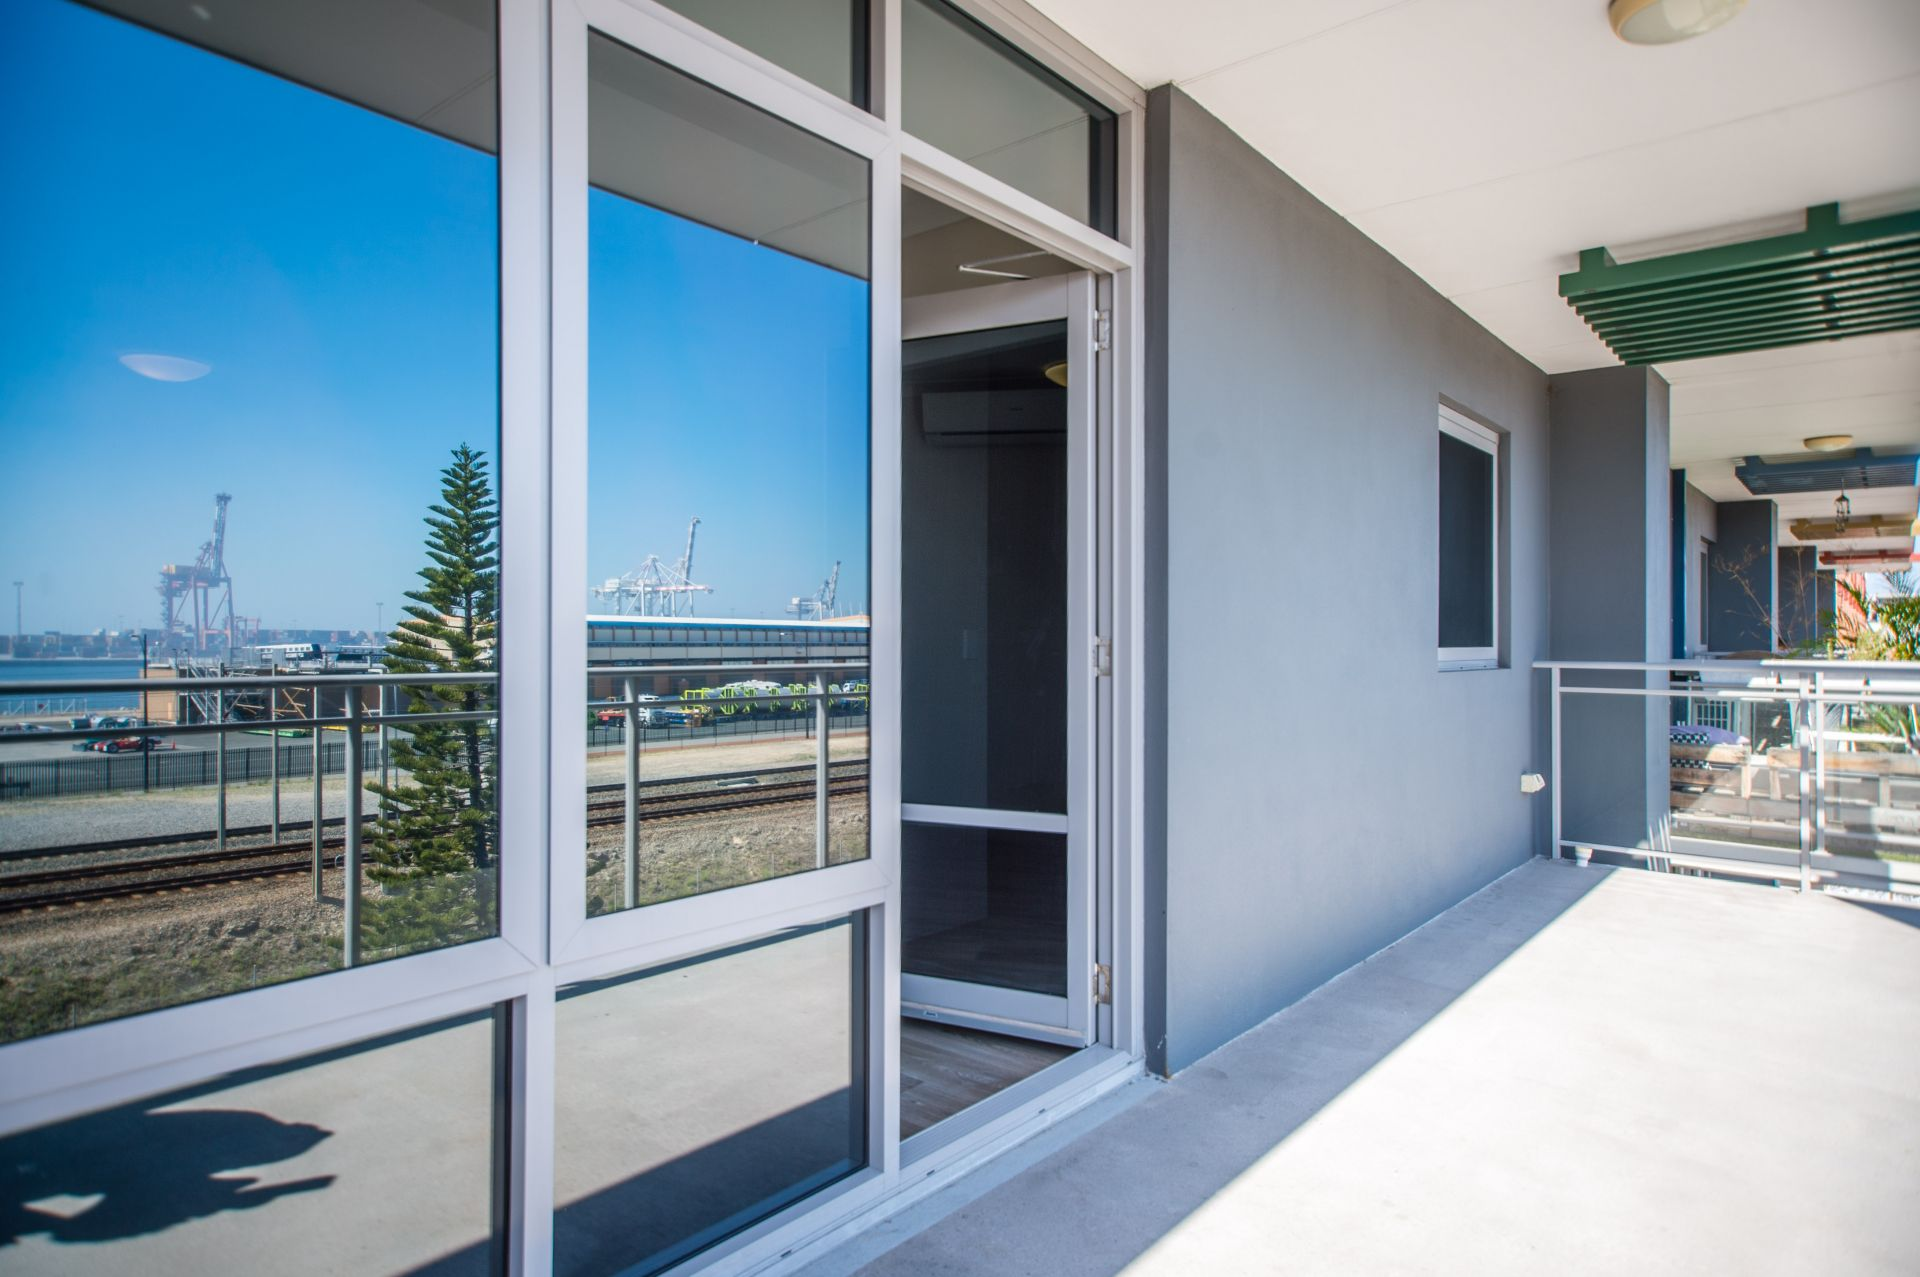 43/57 Beach Street, Fremantle